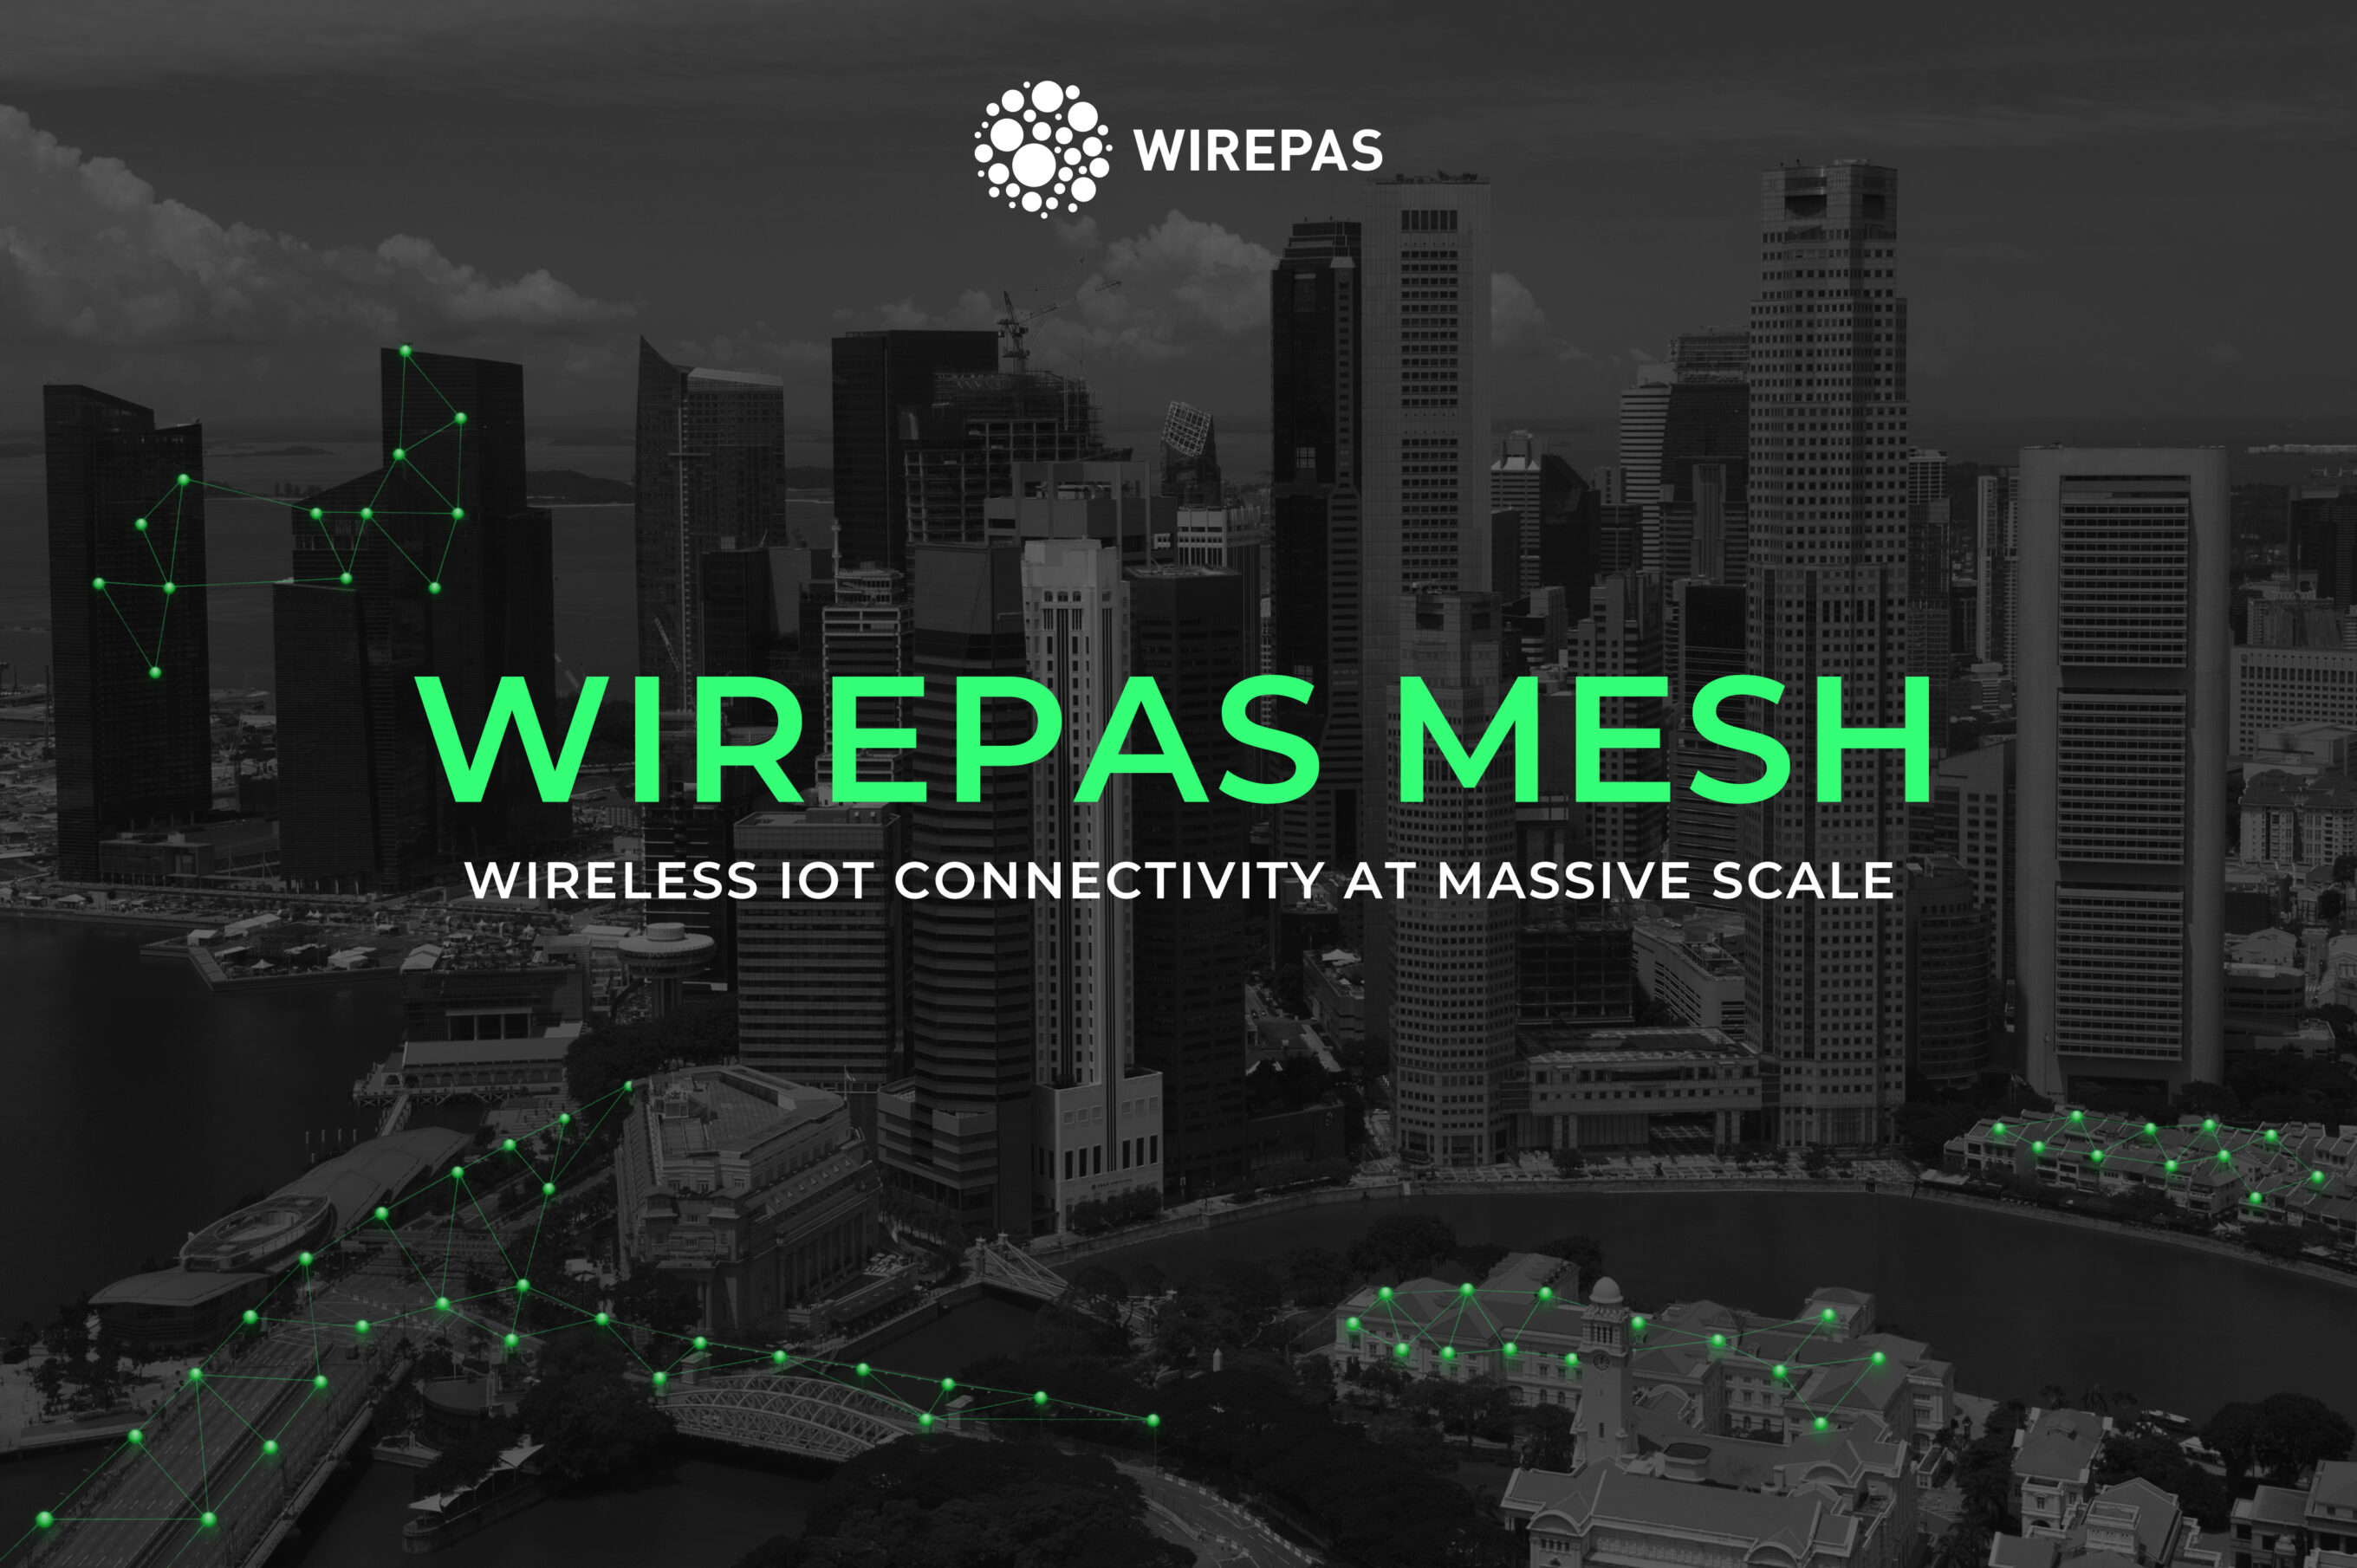 KPN Ventures provides growth capital to Wirepas, enabling